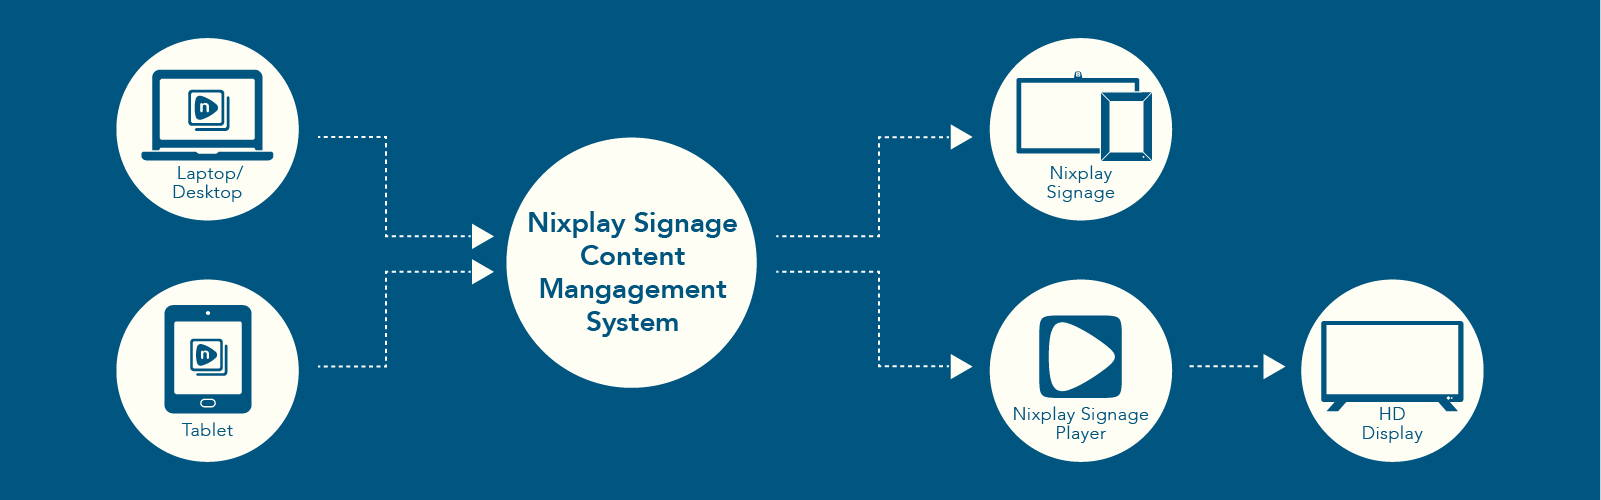 Nixplay Signage Content Management System